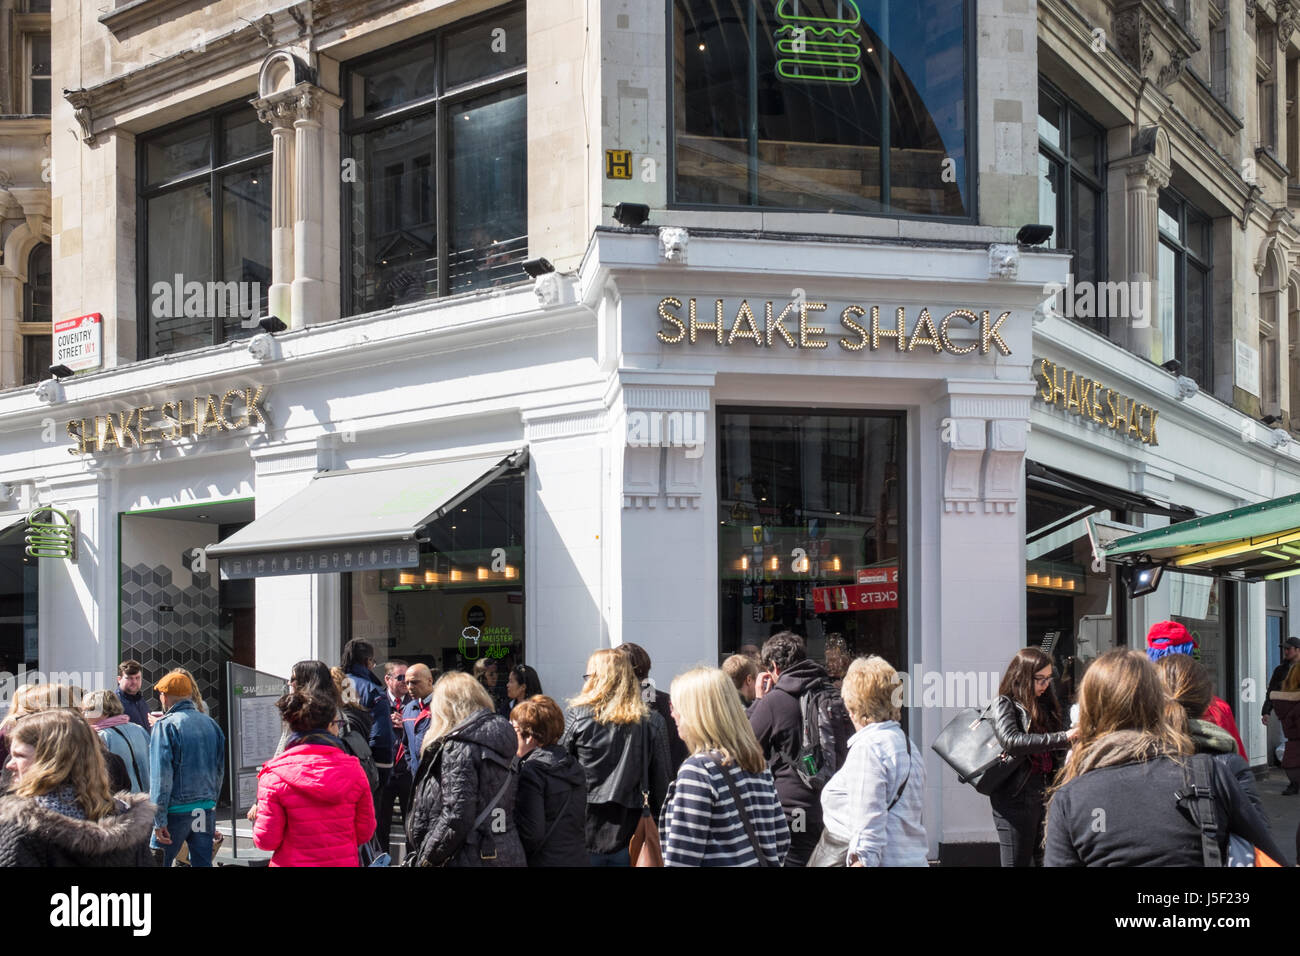 Shake Shack fast food restaurant in London's Leicester Square - Stock Image